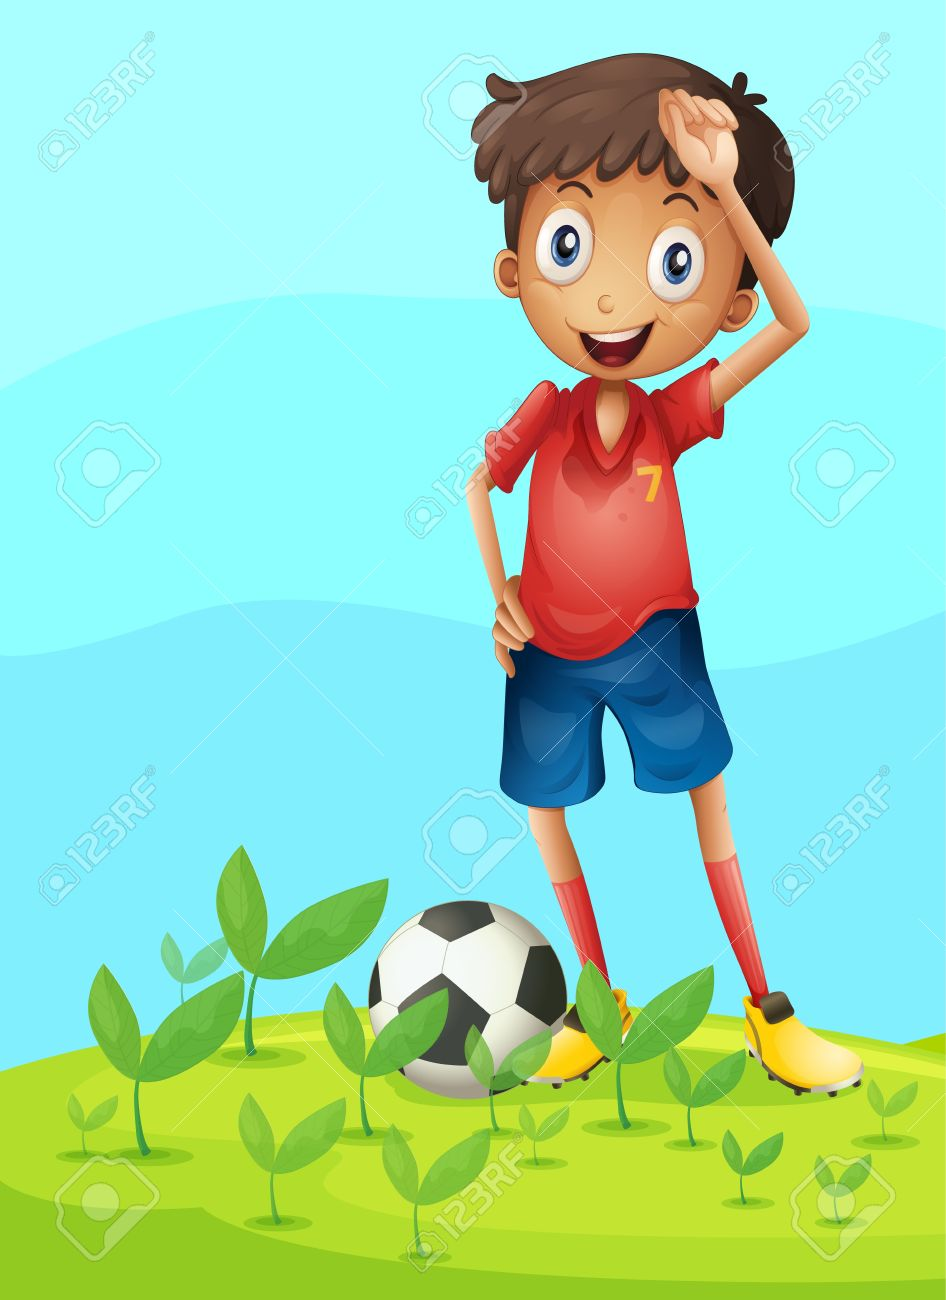 Illustration of a boy playing football in a beautiful nature Stock Vector - 17031302